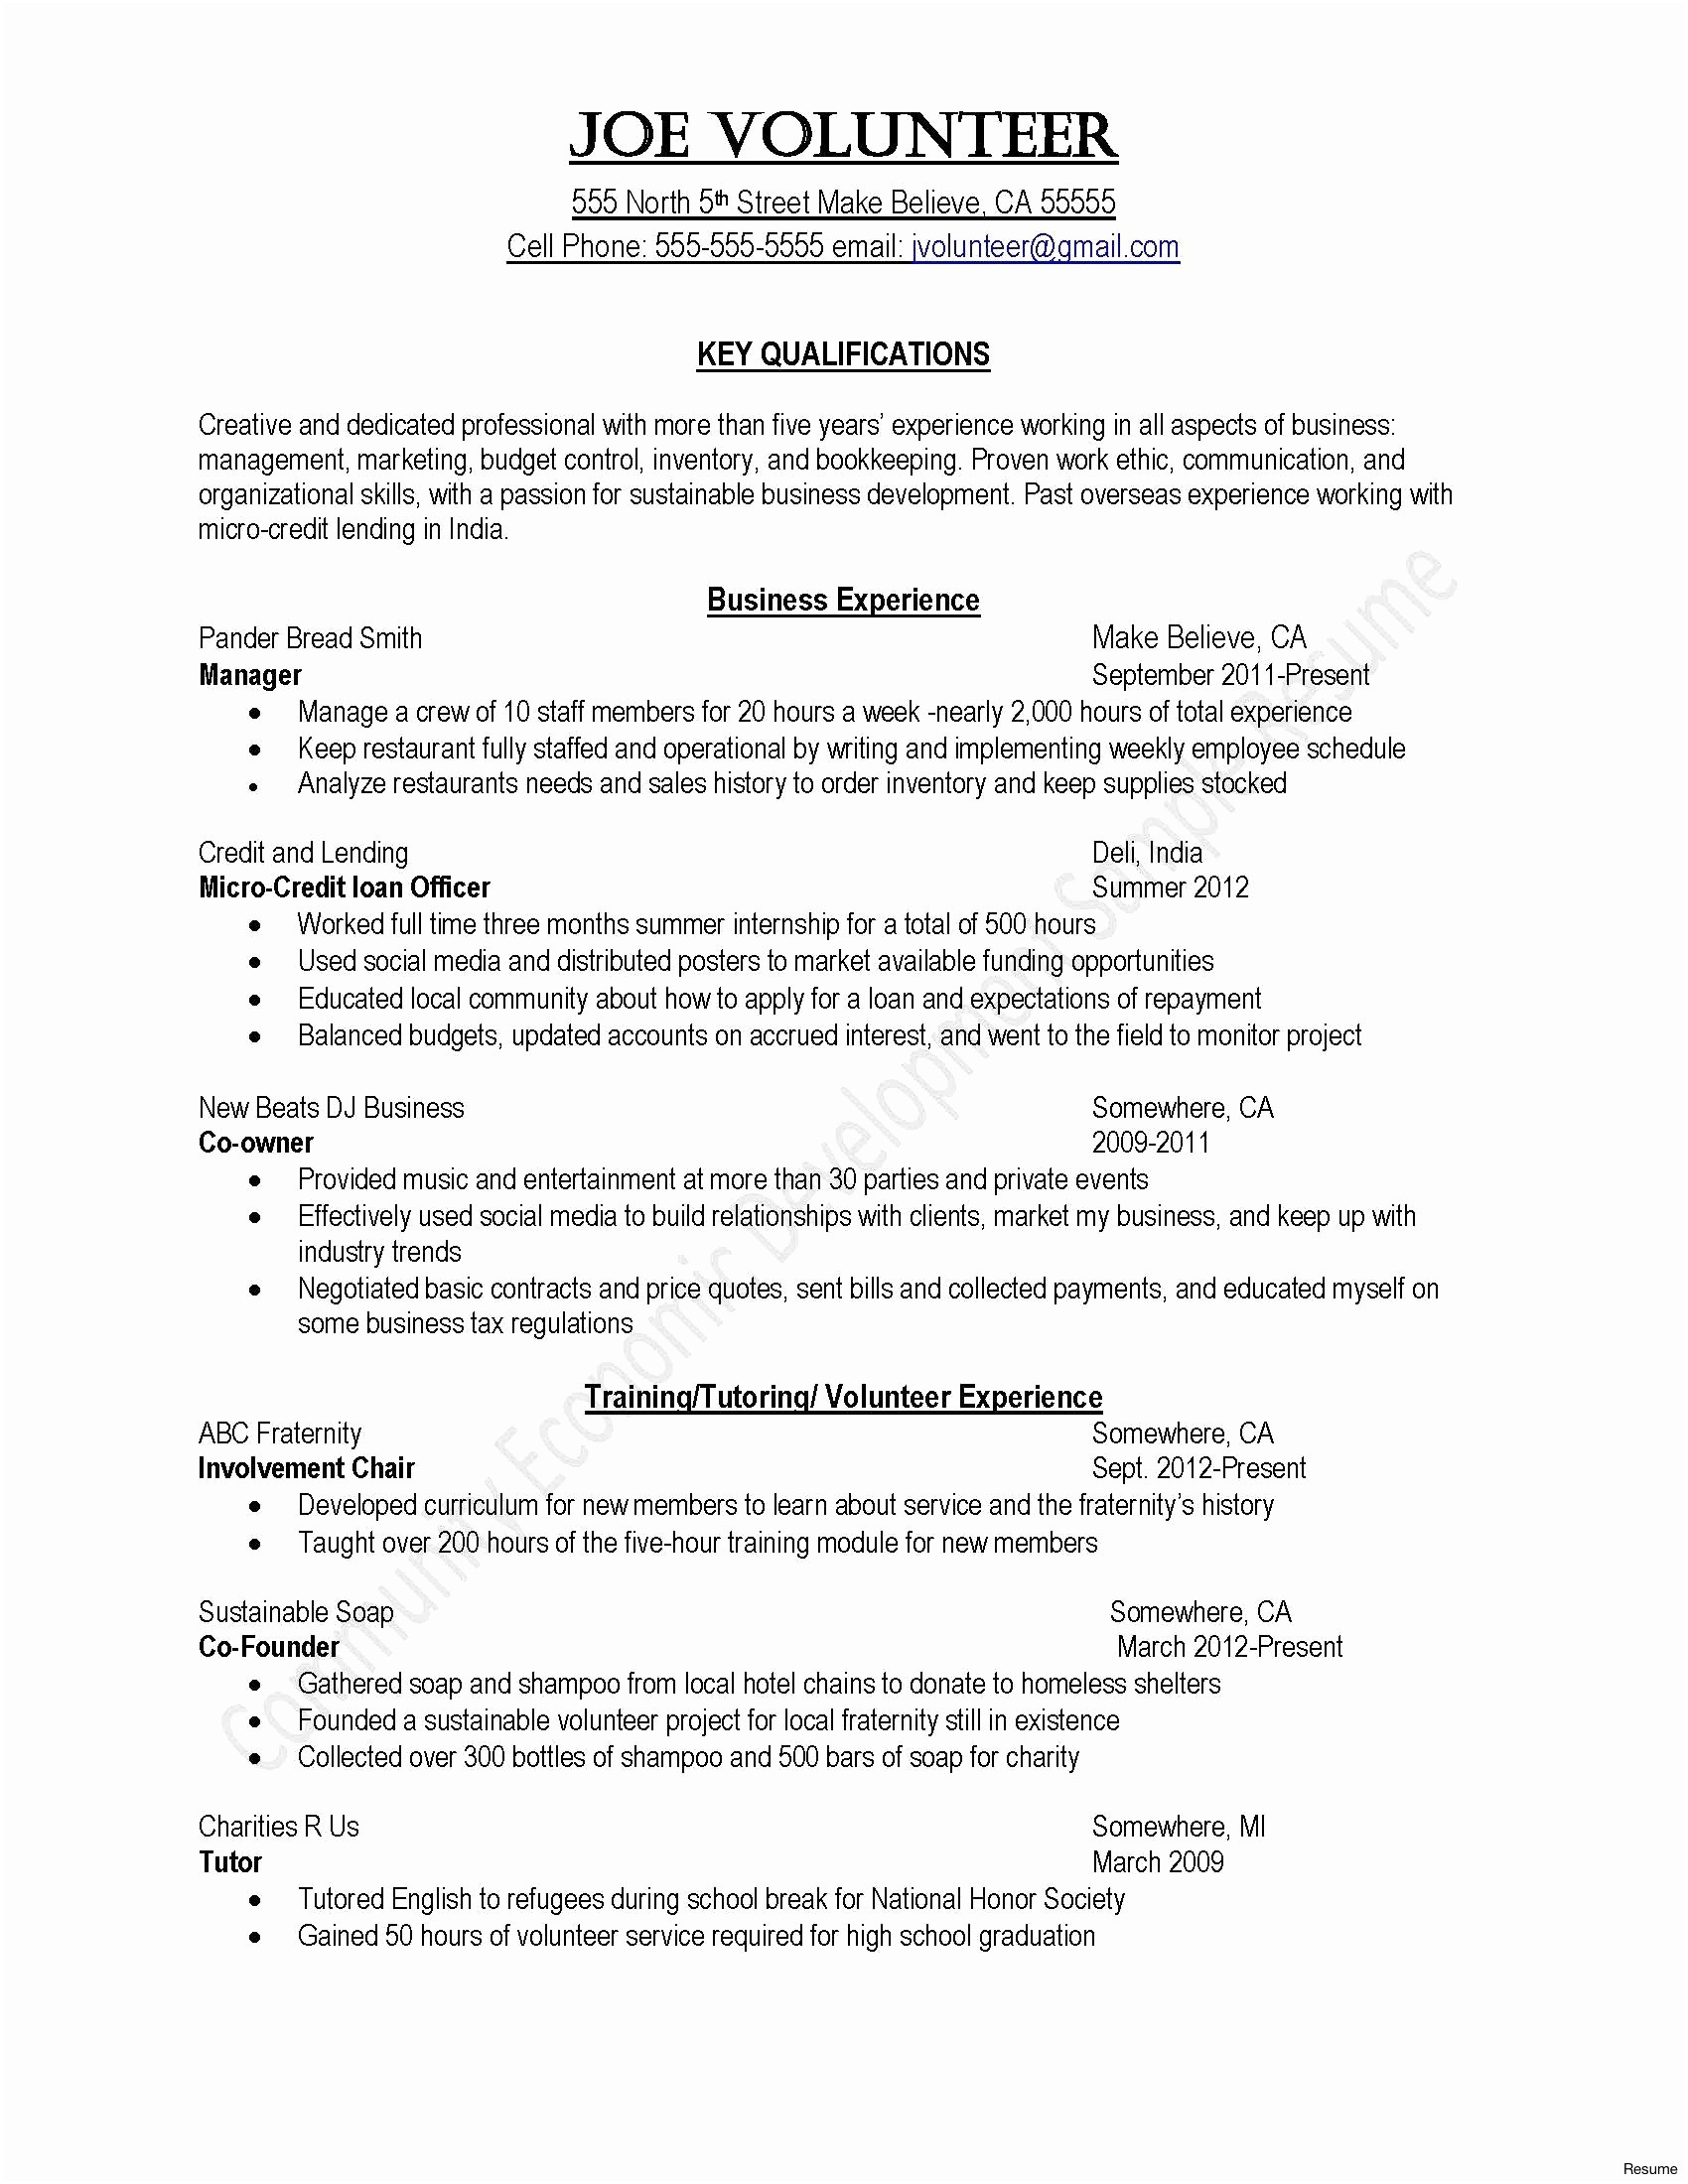 Professional Accountant Resume Template - Sample Resume for Tax Accountant